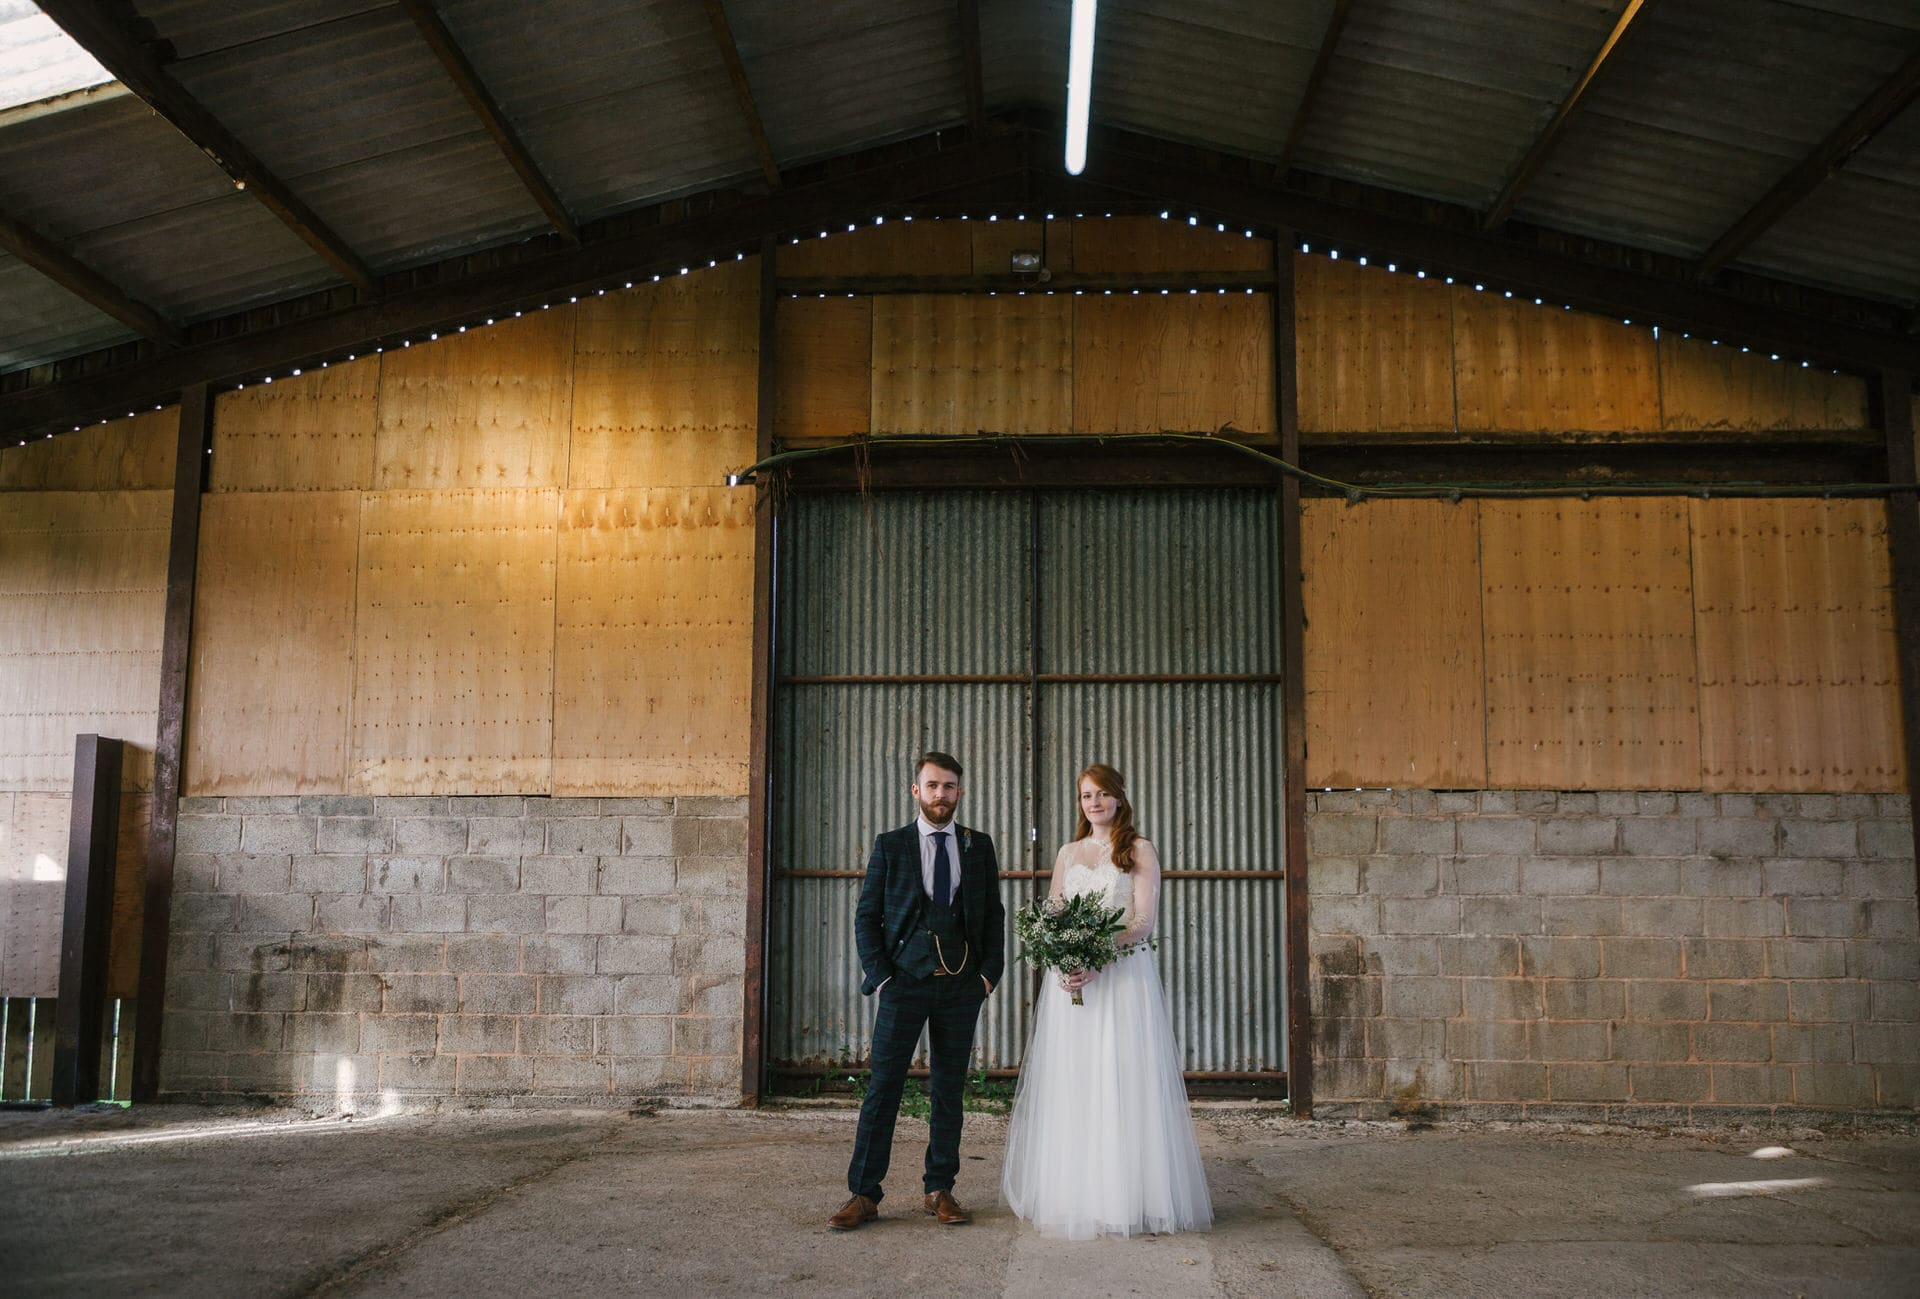 Bride & Groom portrait at their Curradine Barns wedding venue